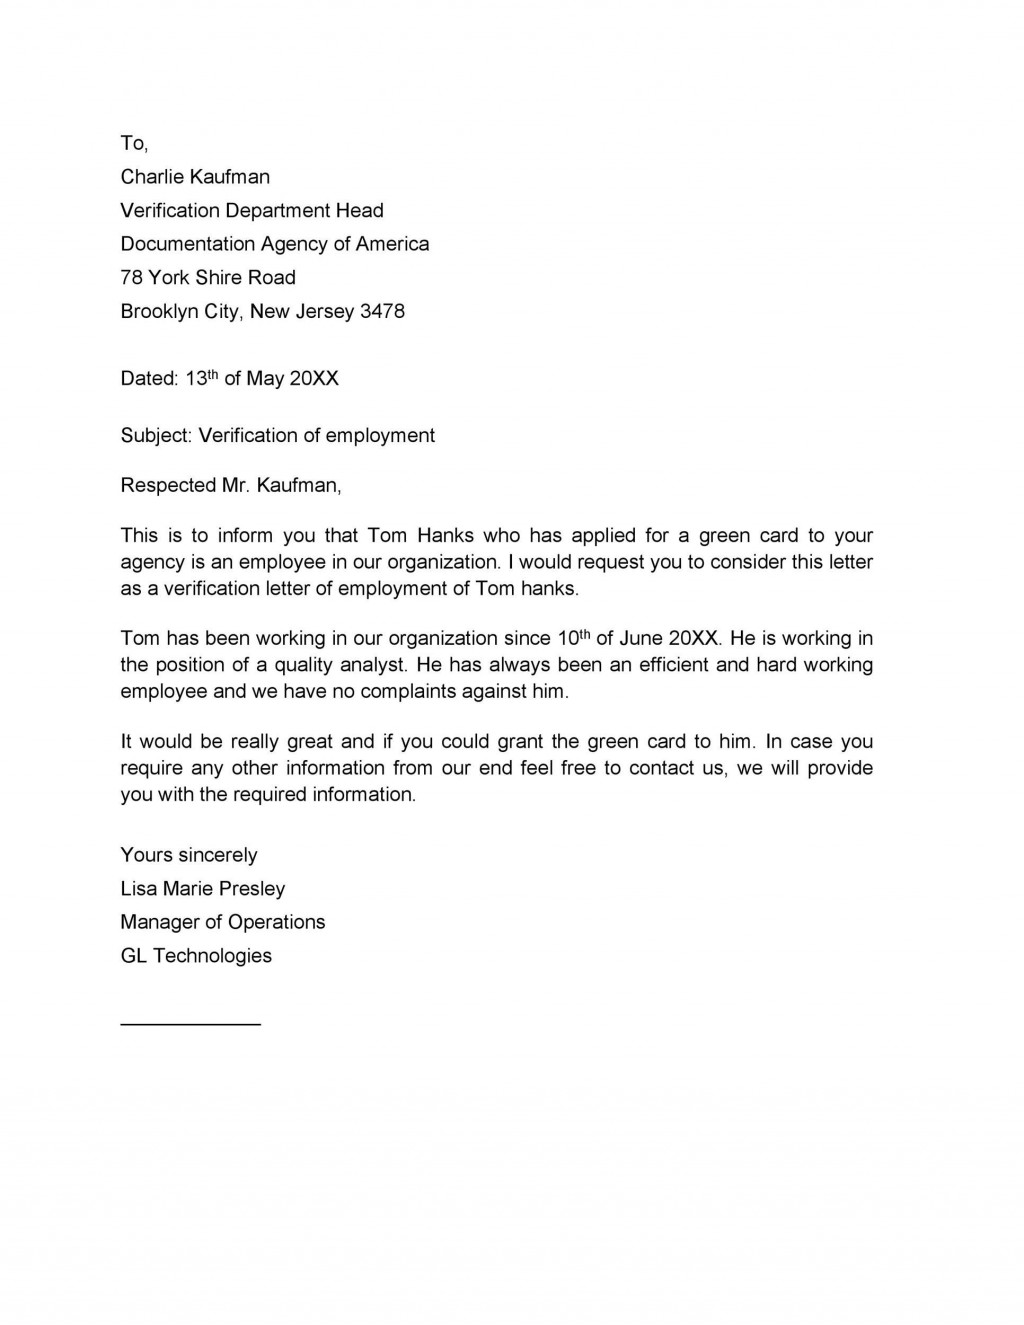 009 Fantastic Confirmation Of Employment Letter Template Nz Photo Large